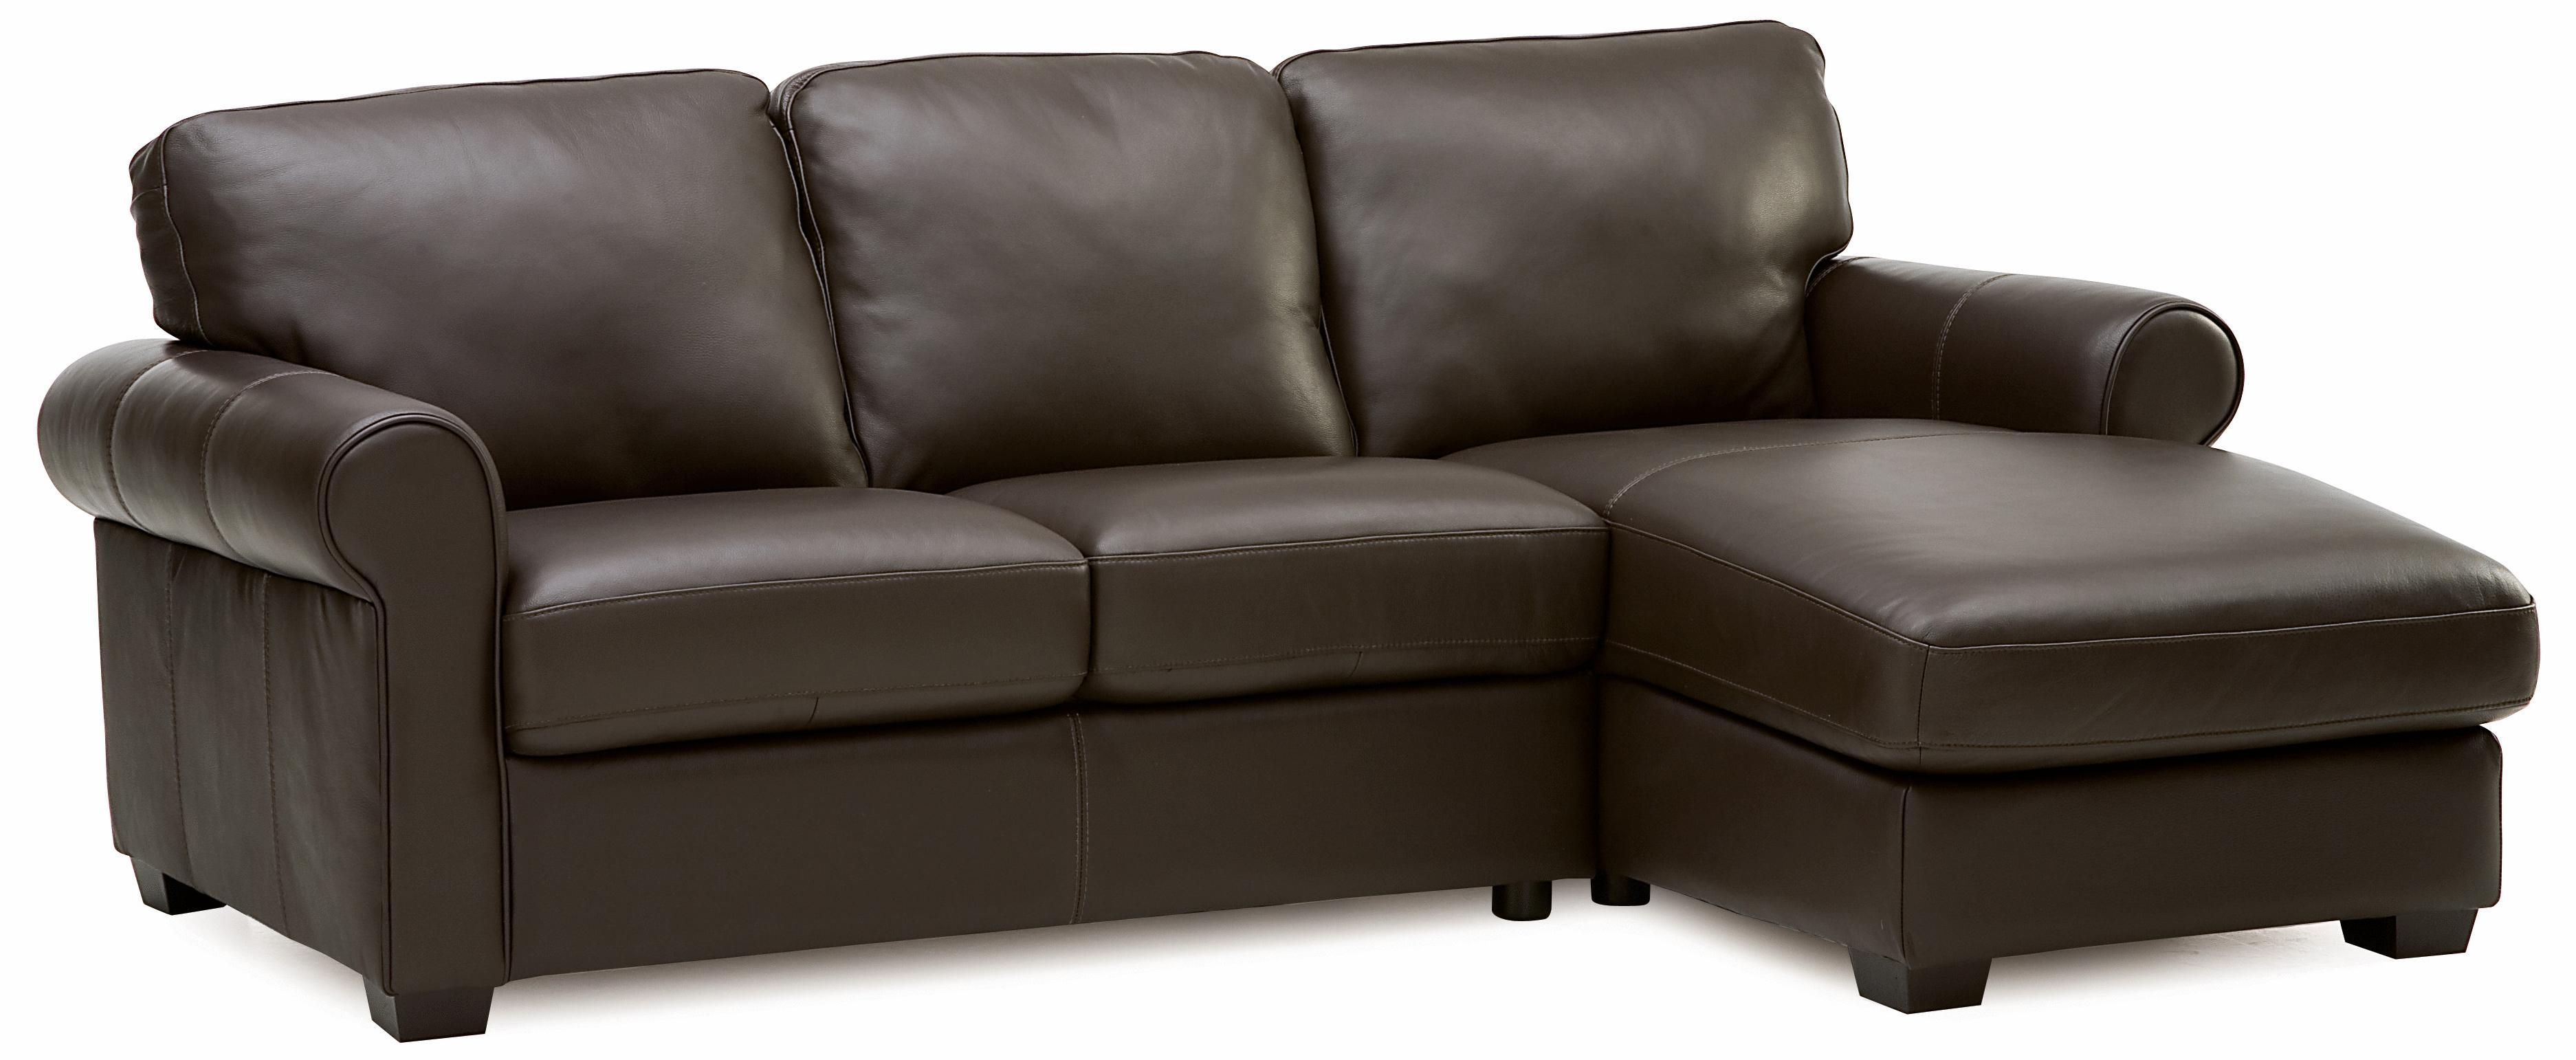 palliser magnum transitional 2 pc sectional with rhf chaise